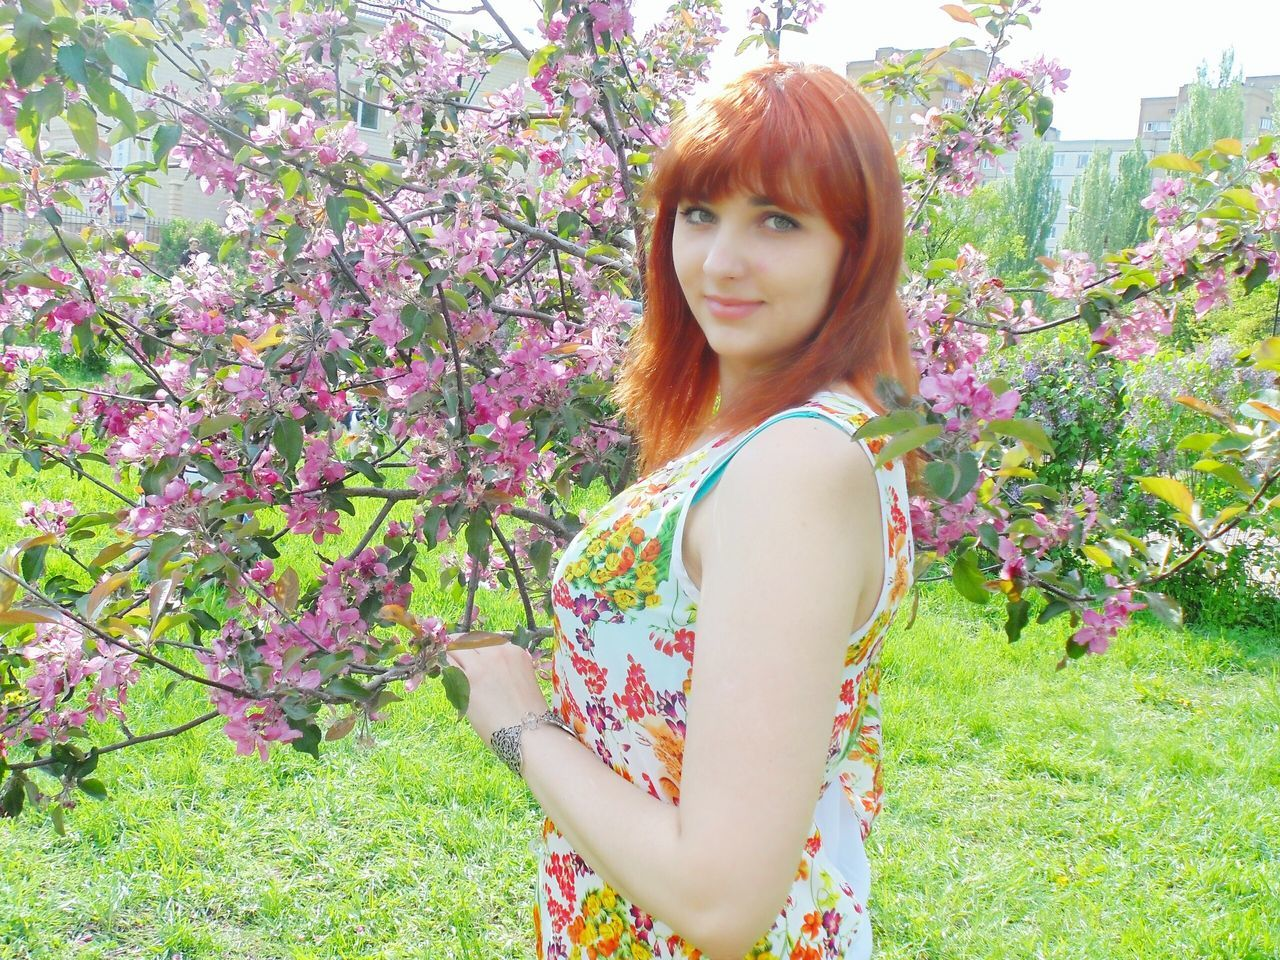 flower, young adult, one person, looking at camera, real people, redhead, young women, tree, growth, standing, beautiful woman, nature, leisure activity, portrait, day, casual clothing, beauty in nature, lifestyles, outdoors, plant, freshness, smiling, medium-length hair